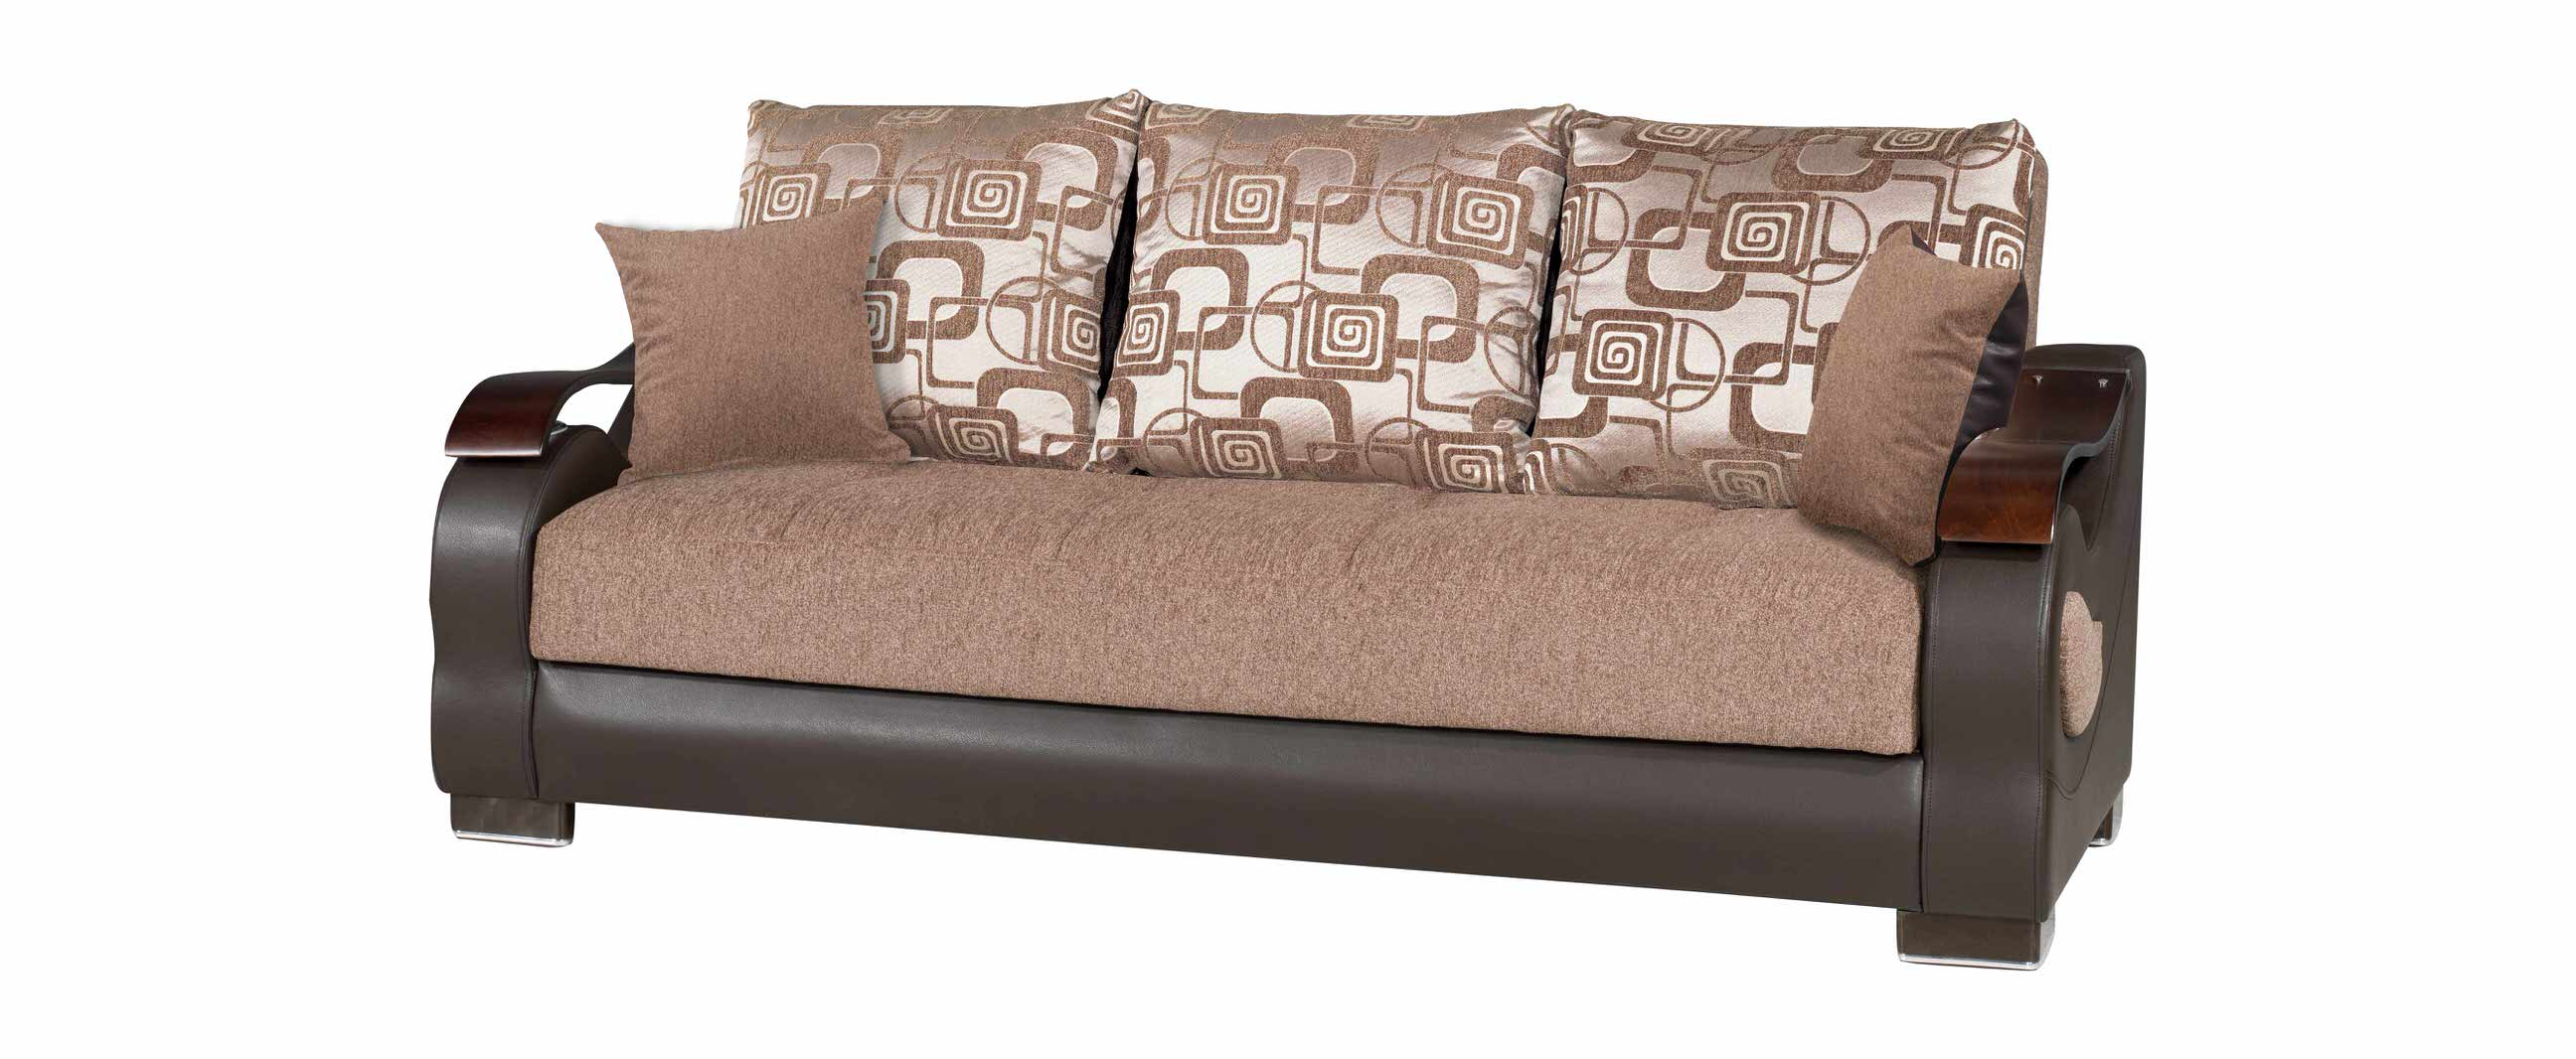 Metroplex Brown Chenille Sofa Bed by Casamode